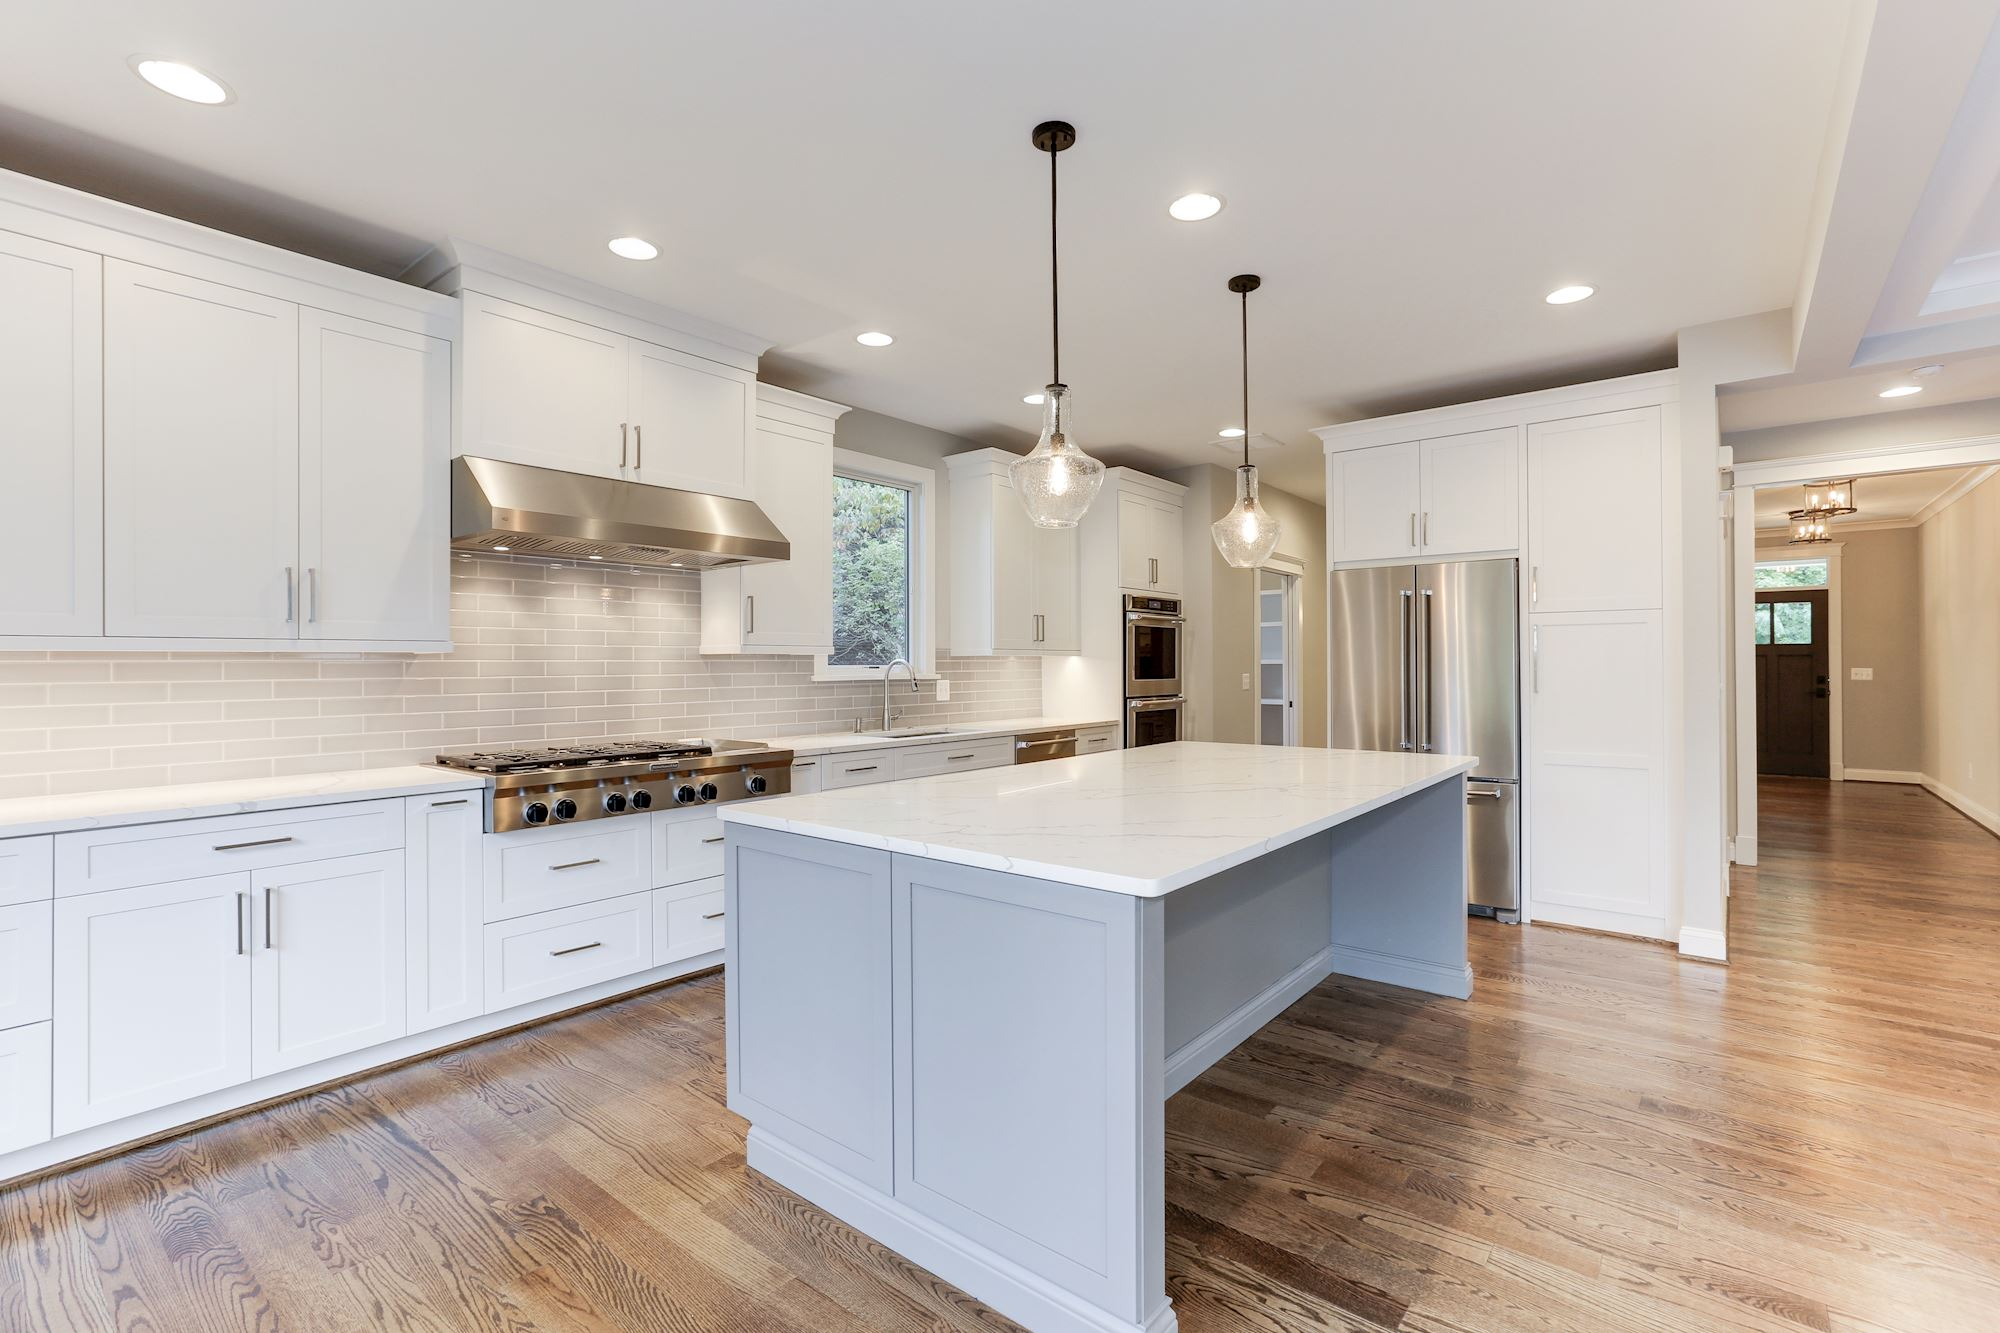 Modern kitchen with white counters and cabinets